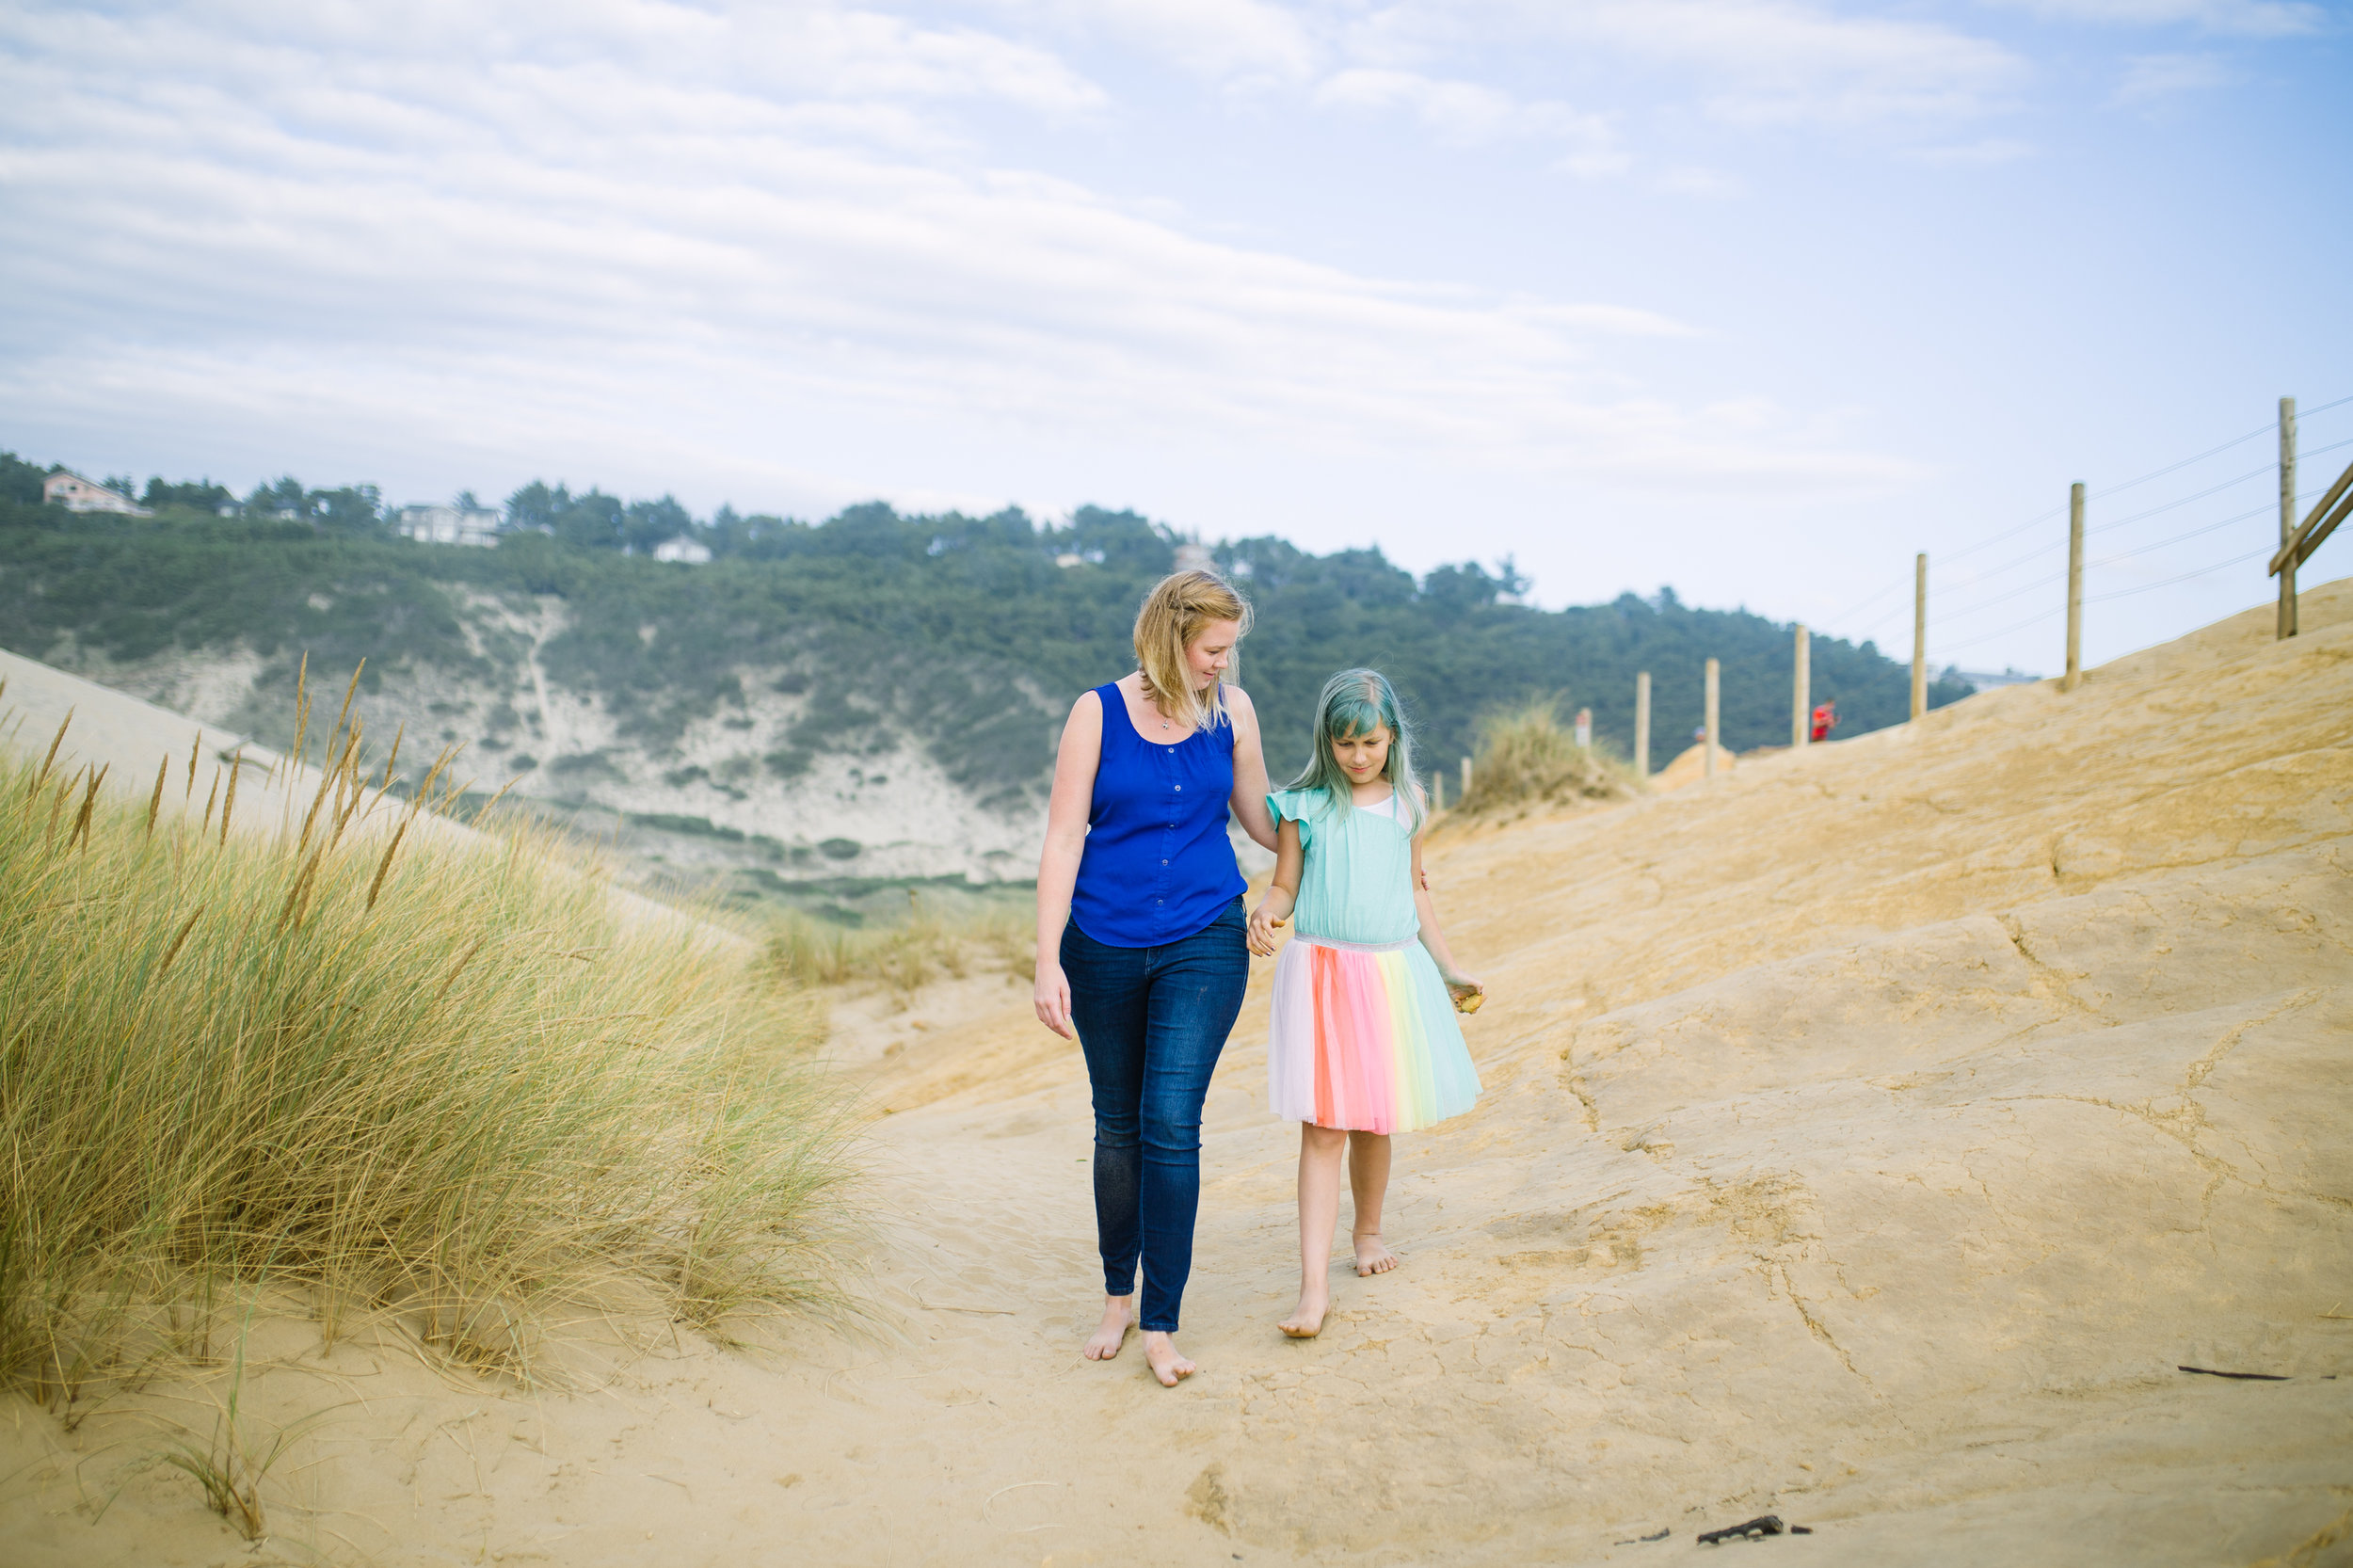 pacific-city-family-photography-6.jpg